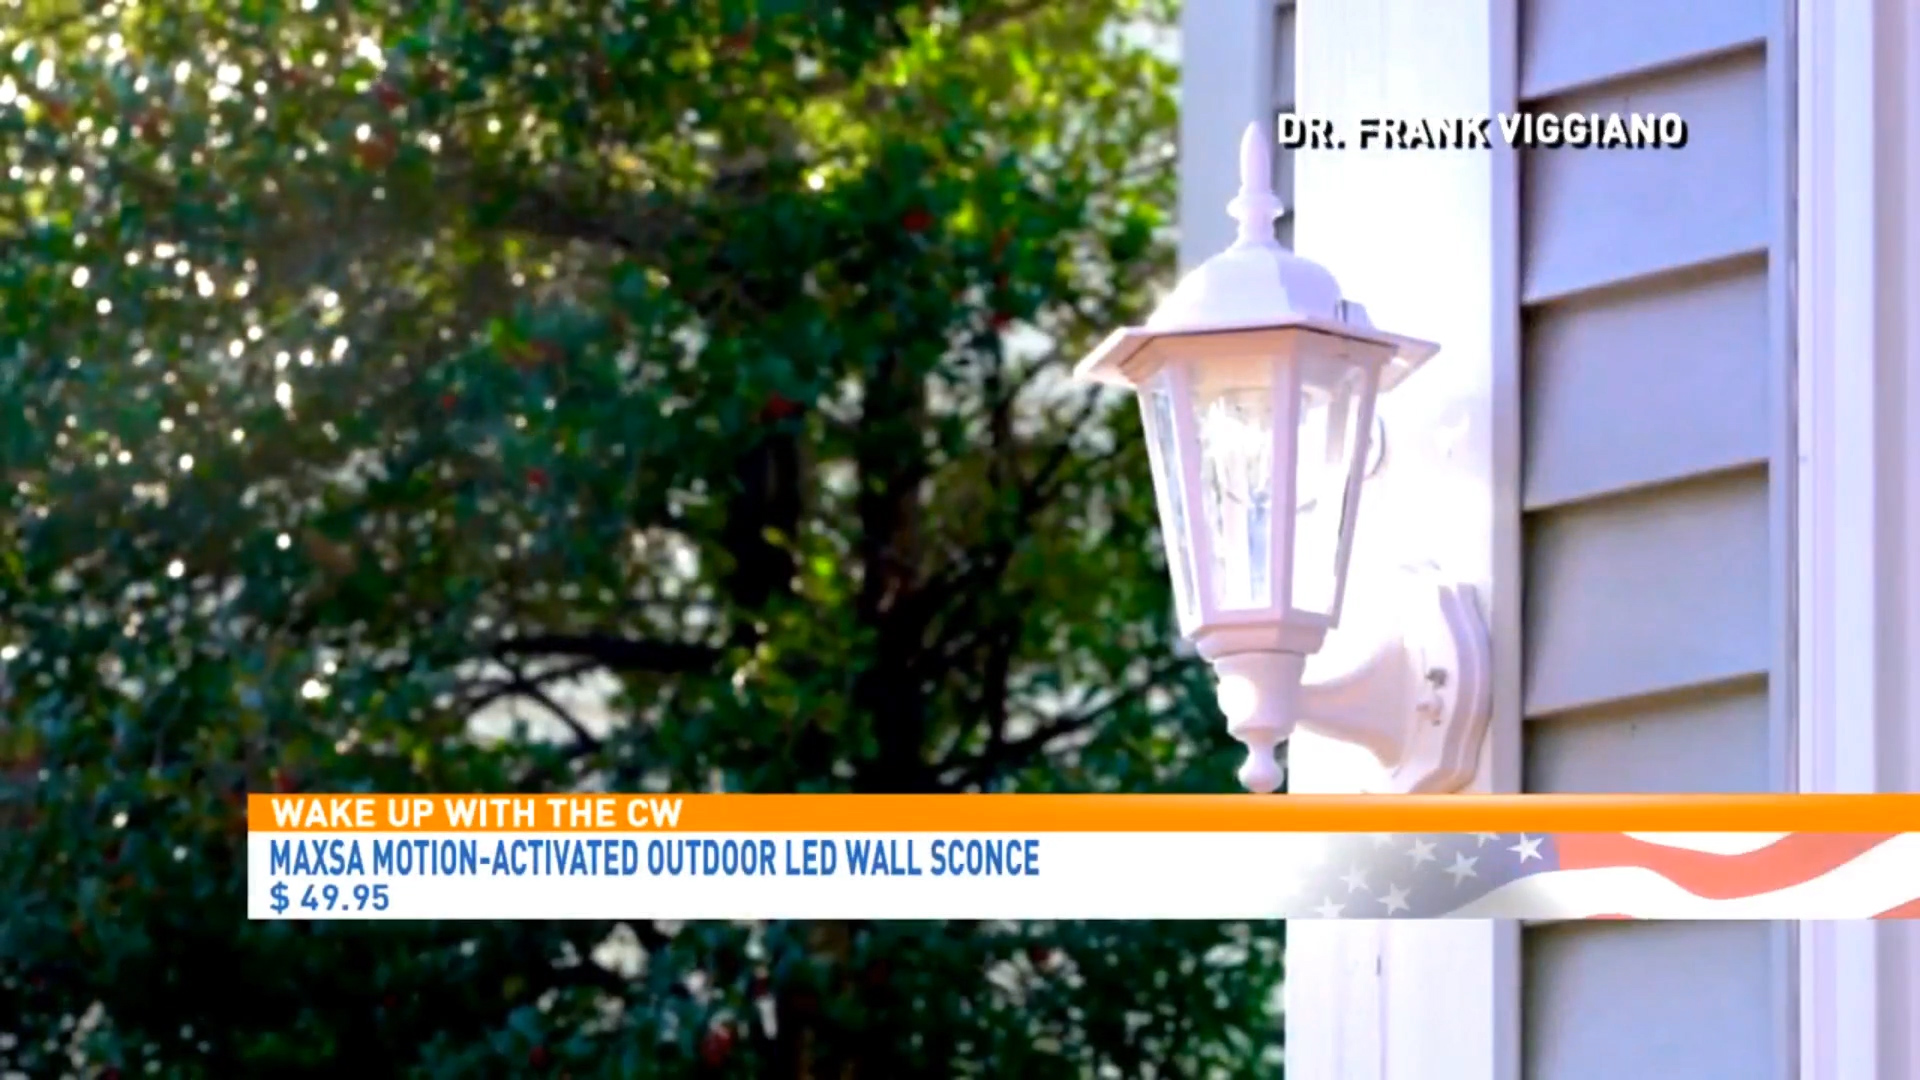 MAXSA MOTION-ACTIVATED OUTDOOR LED WALL SCONCE - $49.95,available exclusively on HSNShop Now